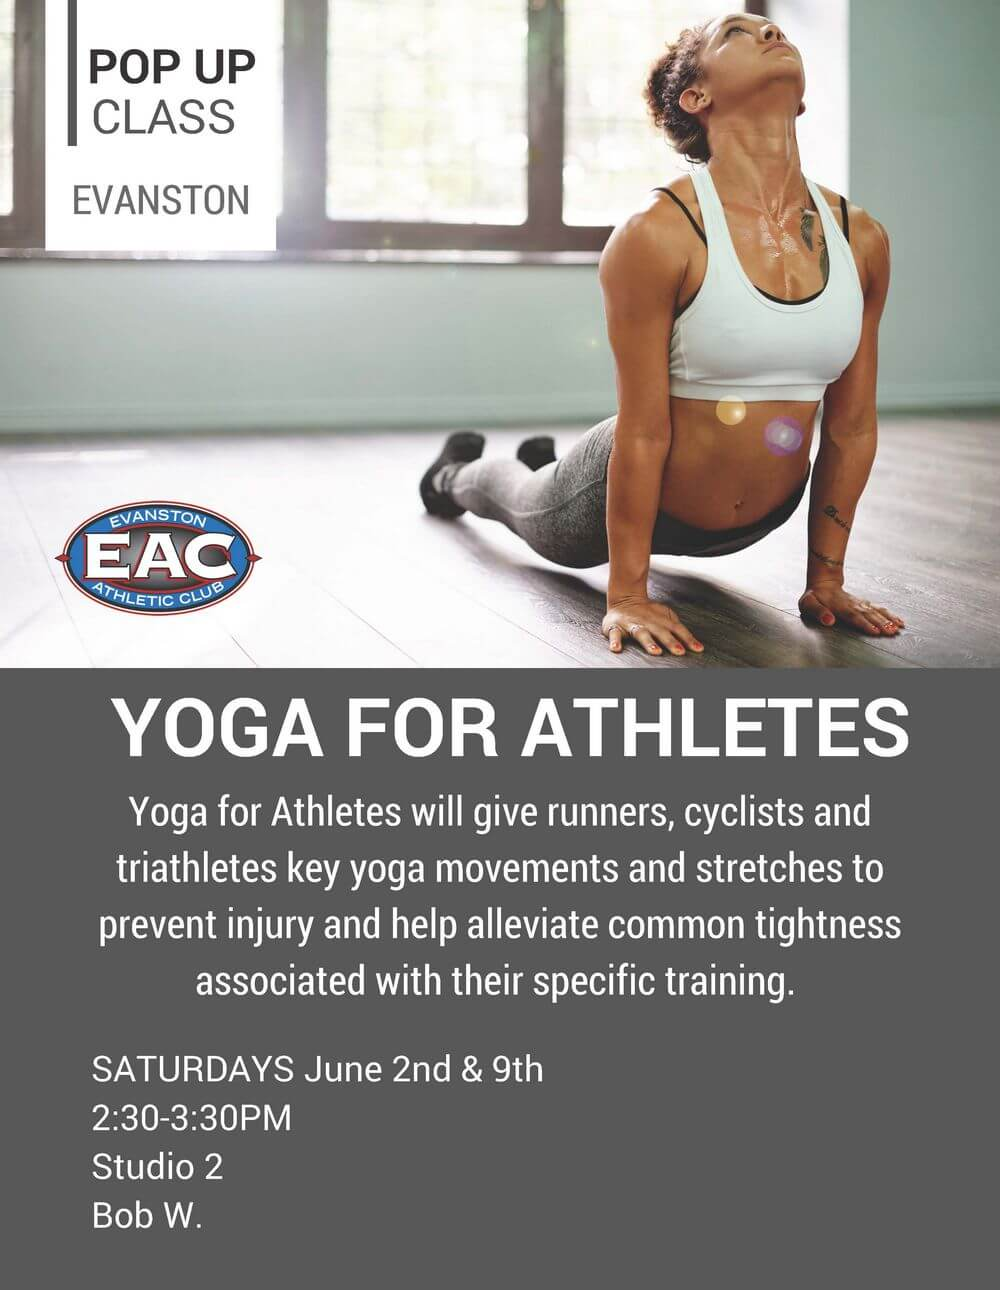 POP UP Yoga for Athletes EAC